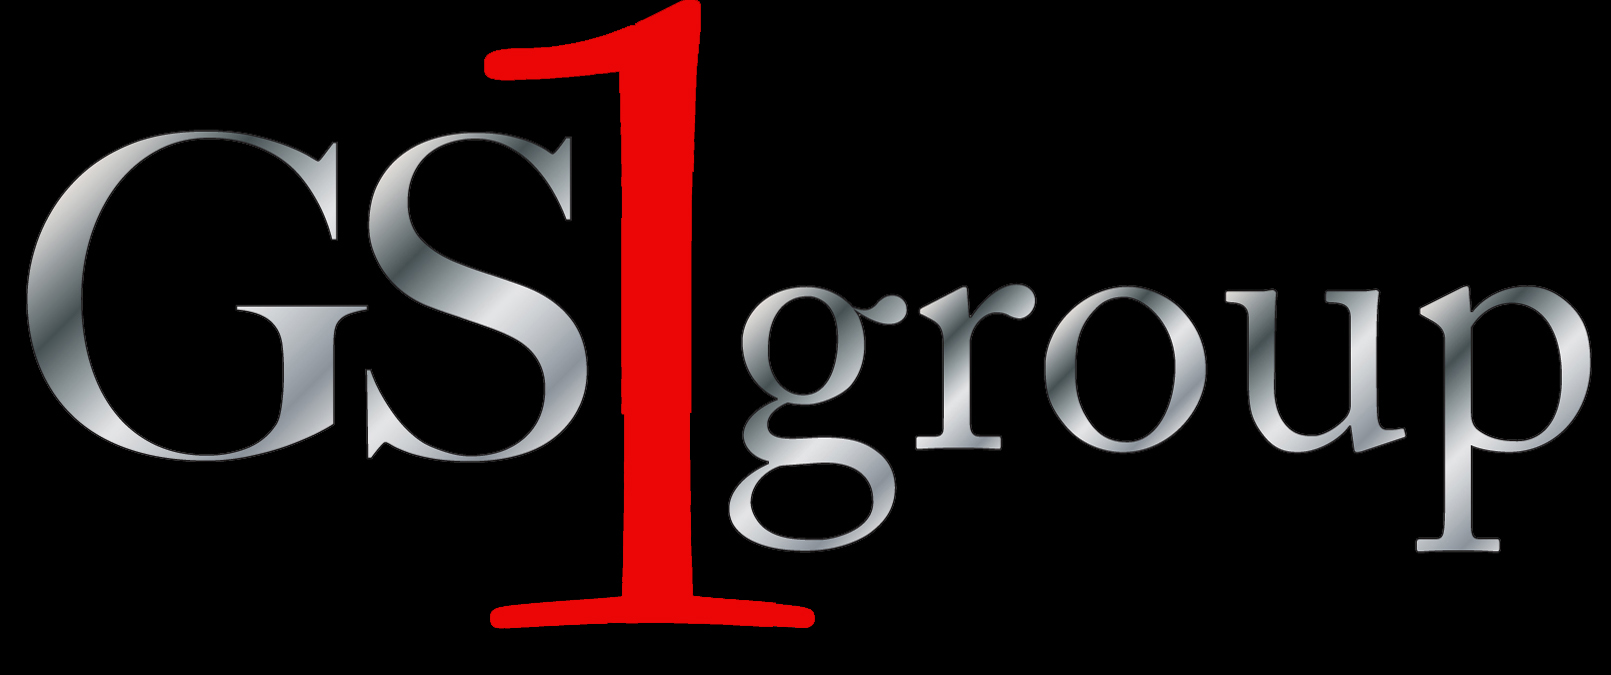 GS1 Group Banner Image